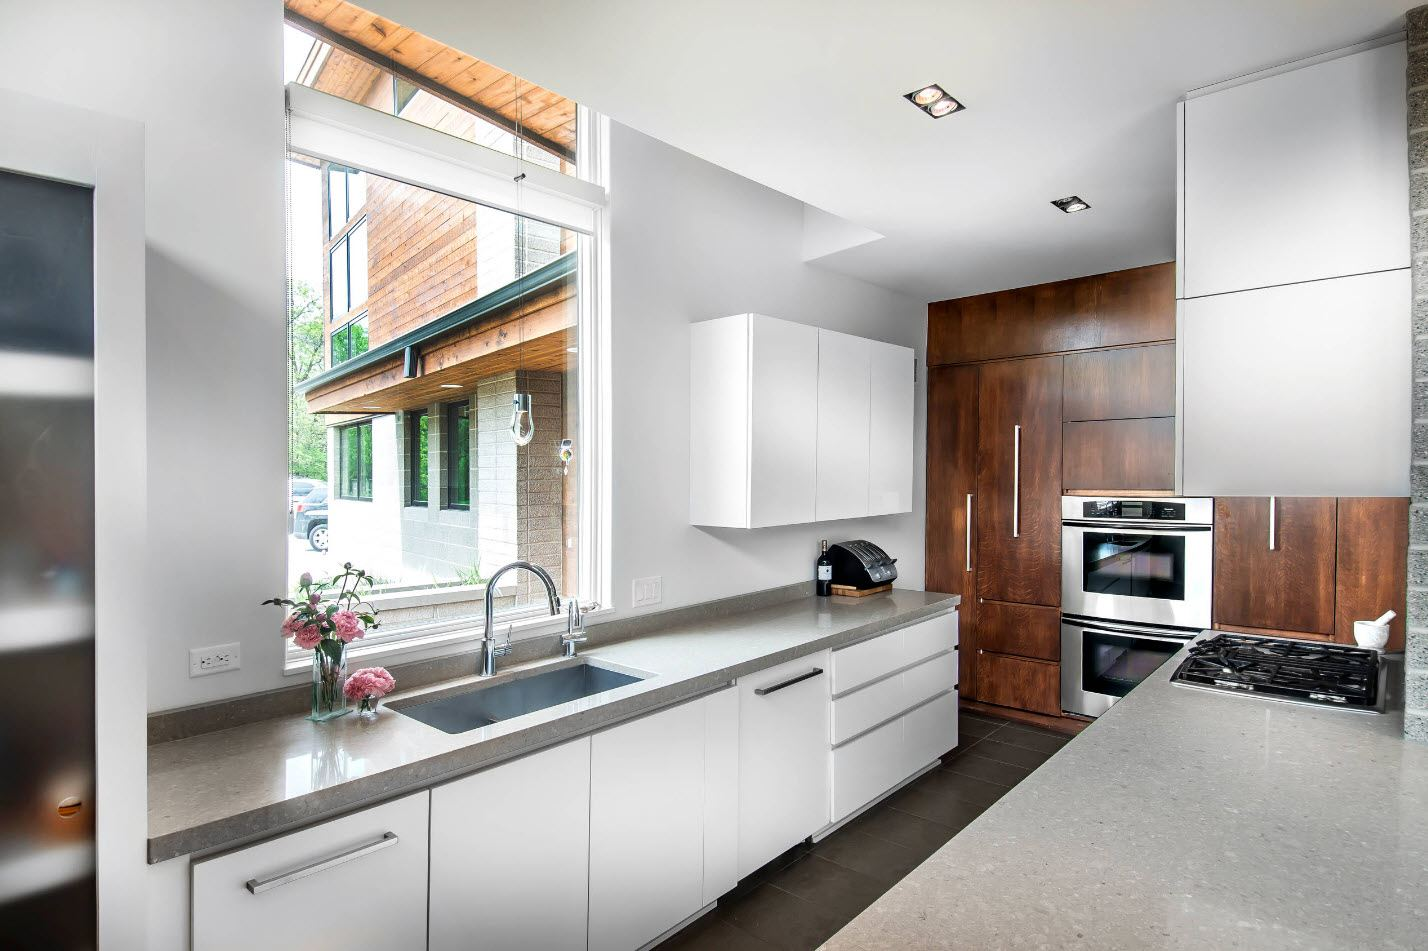 Gorgeous design of the kitchen with two different thematic zones